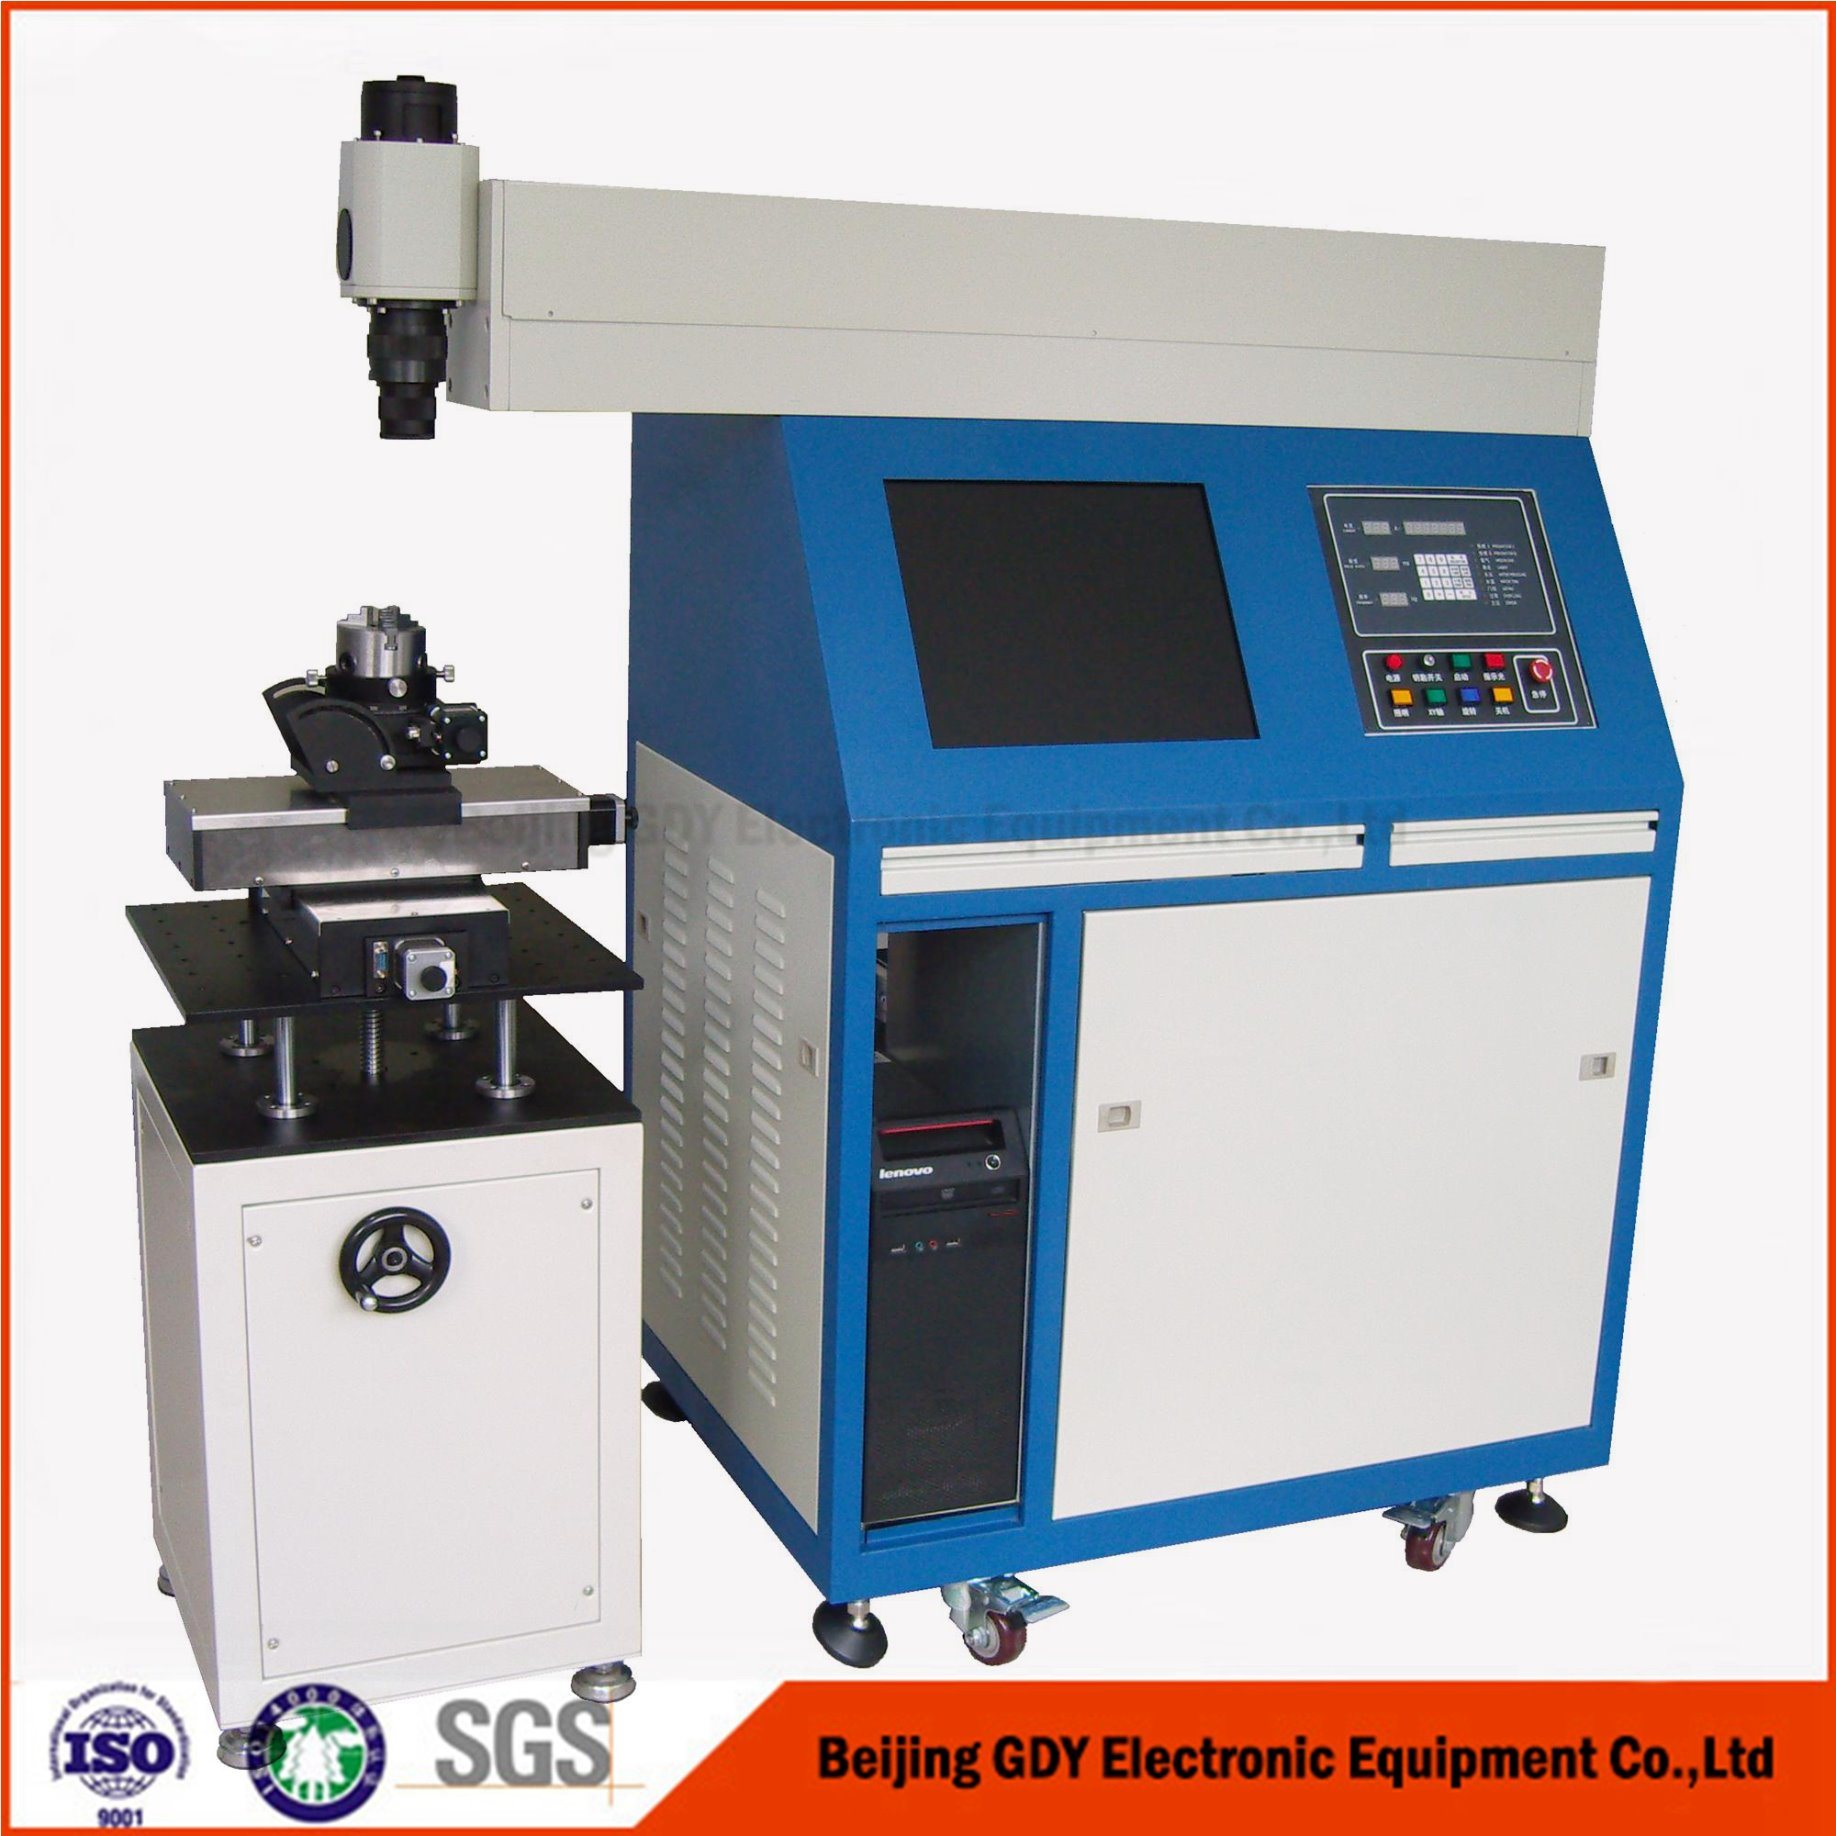 China Laser Welding Machine General Use with Small Heat Affected Zone